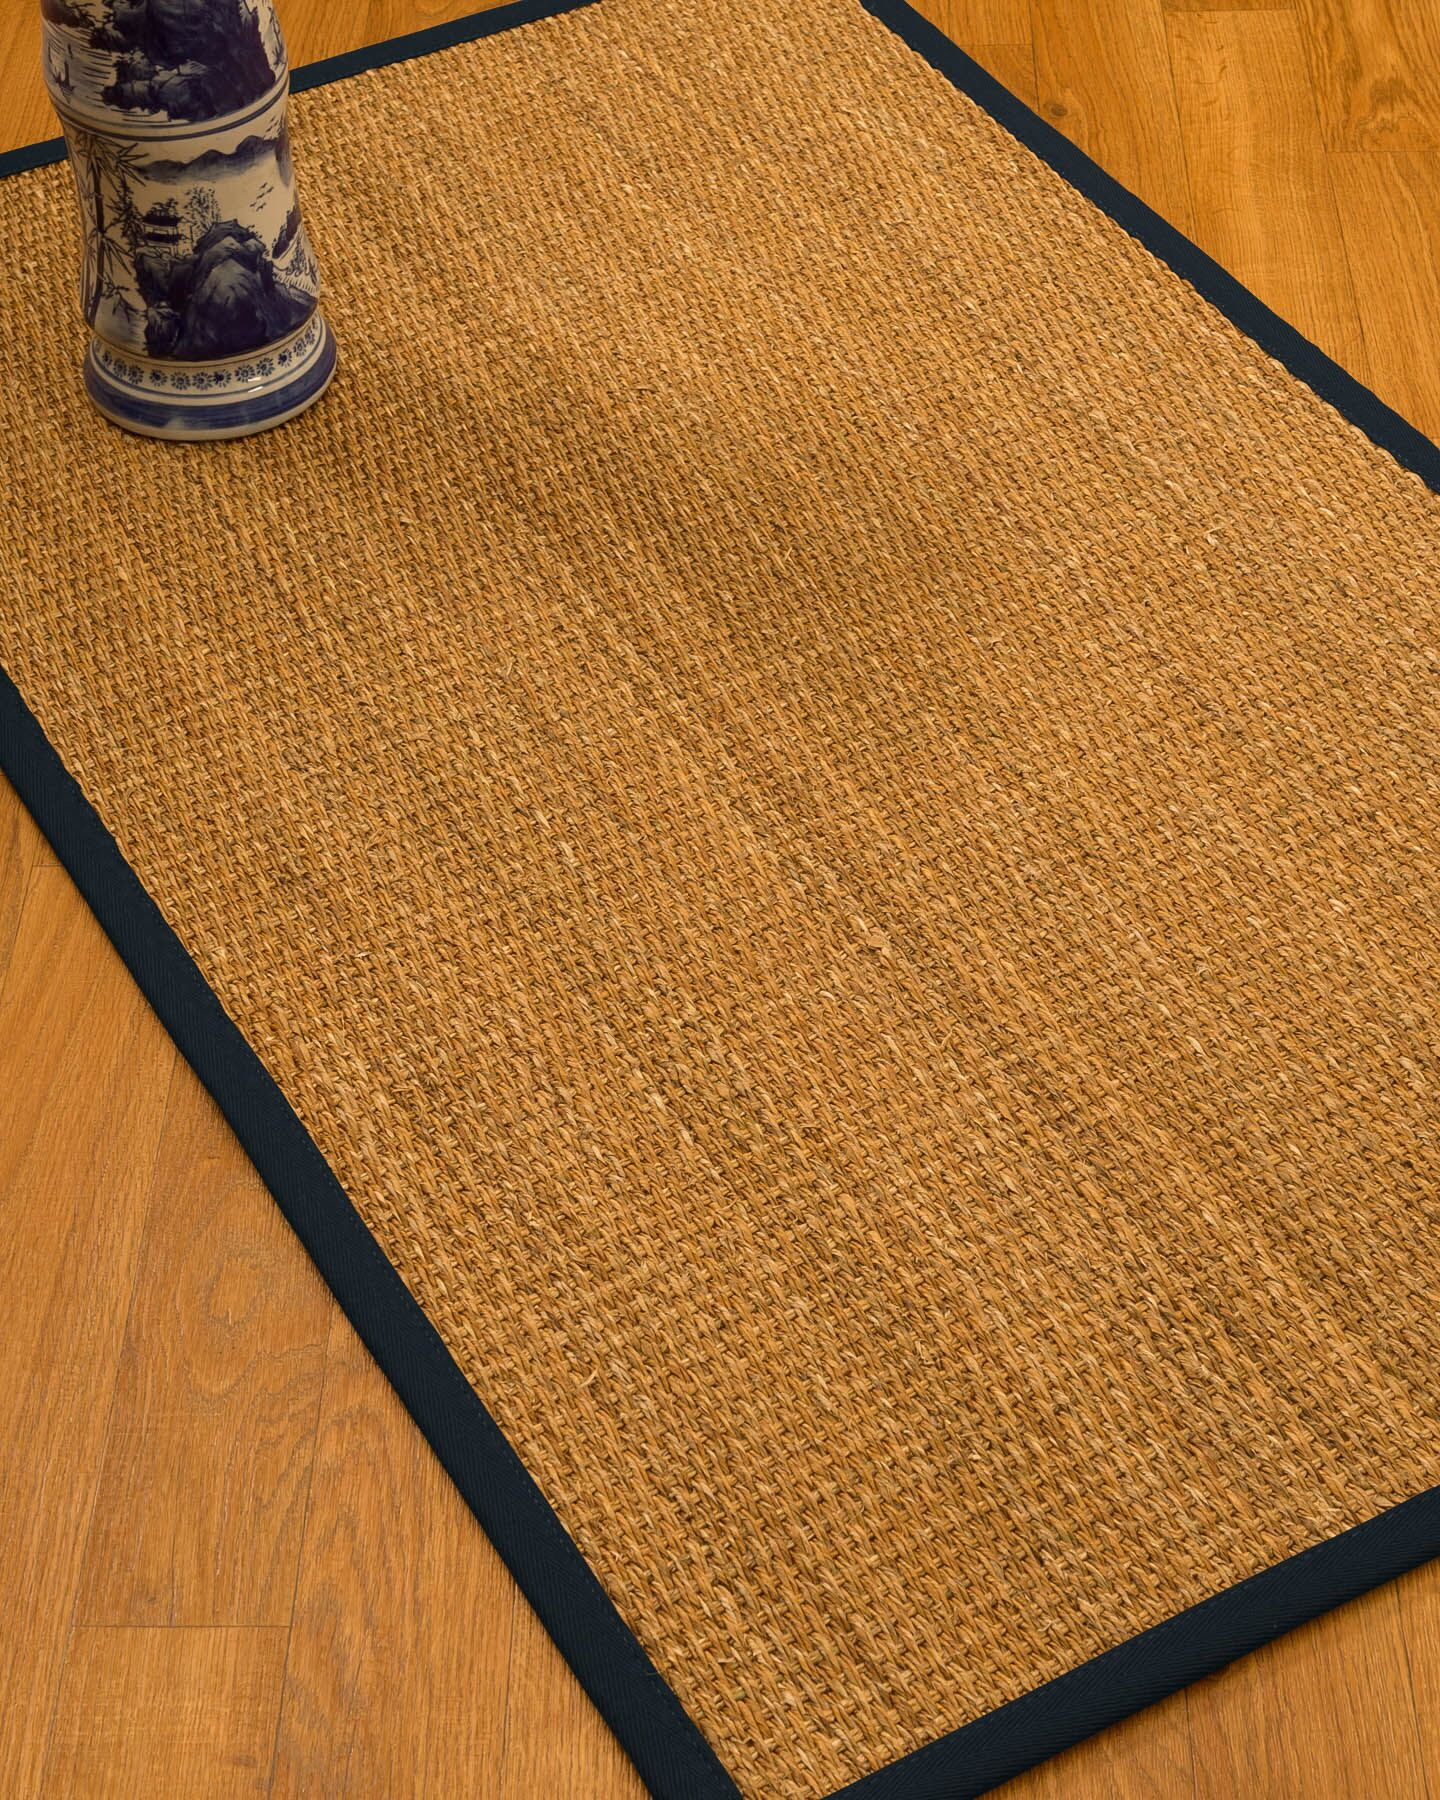 Kimberwood Border Hand-Woven Brown/Midnight Blue Area Rug Rug Size: Rectangle 5' x 8', Rug Pad Included: Yes